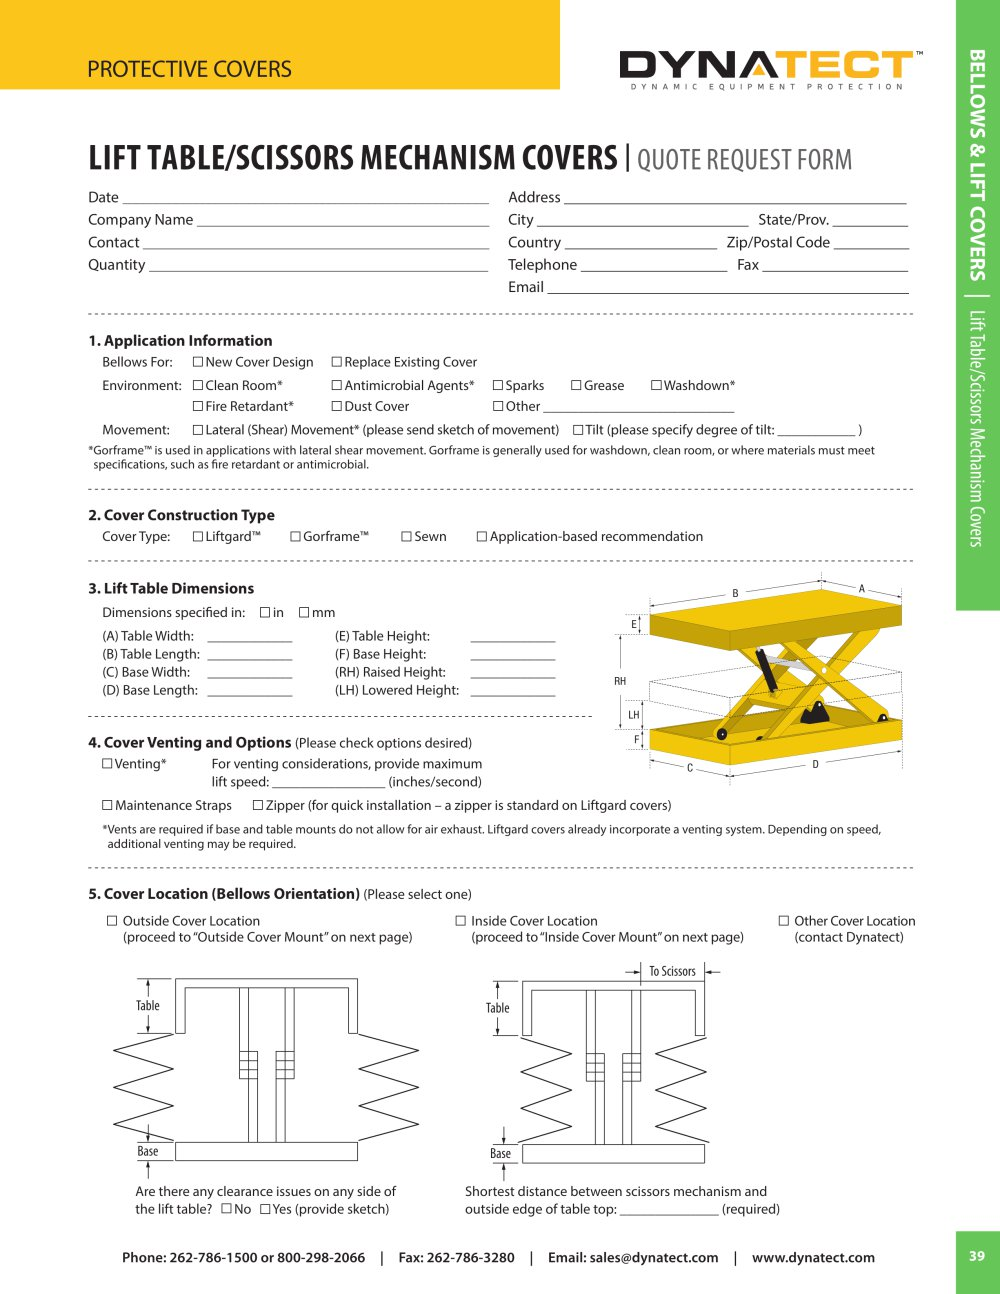 lift table scissors mechanism covers quote form dynatect